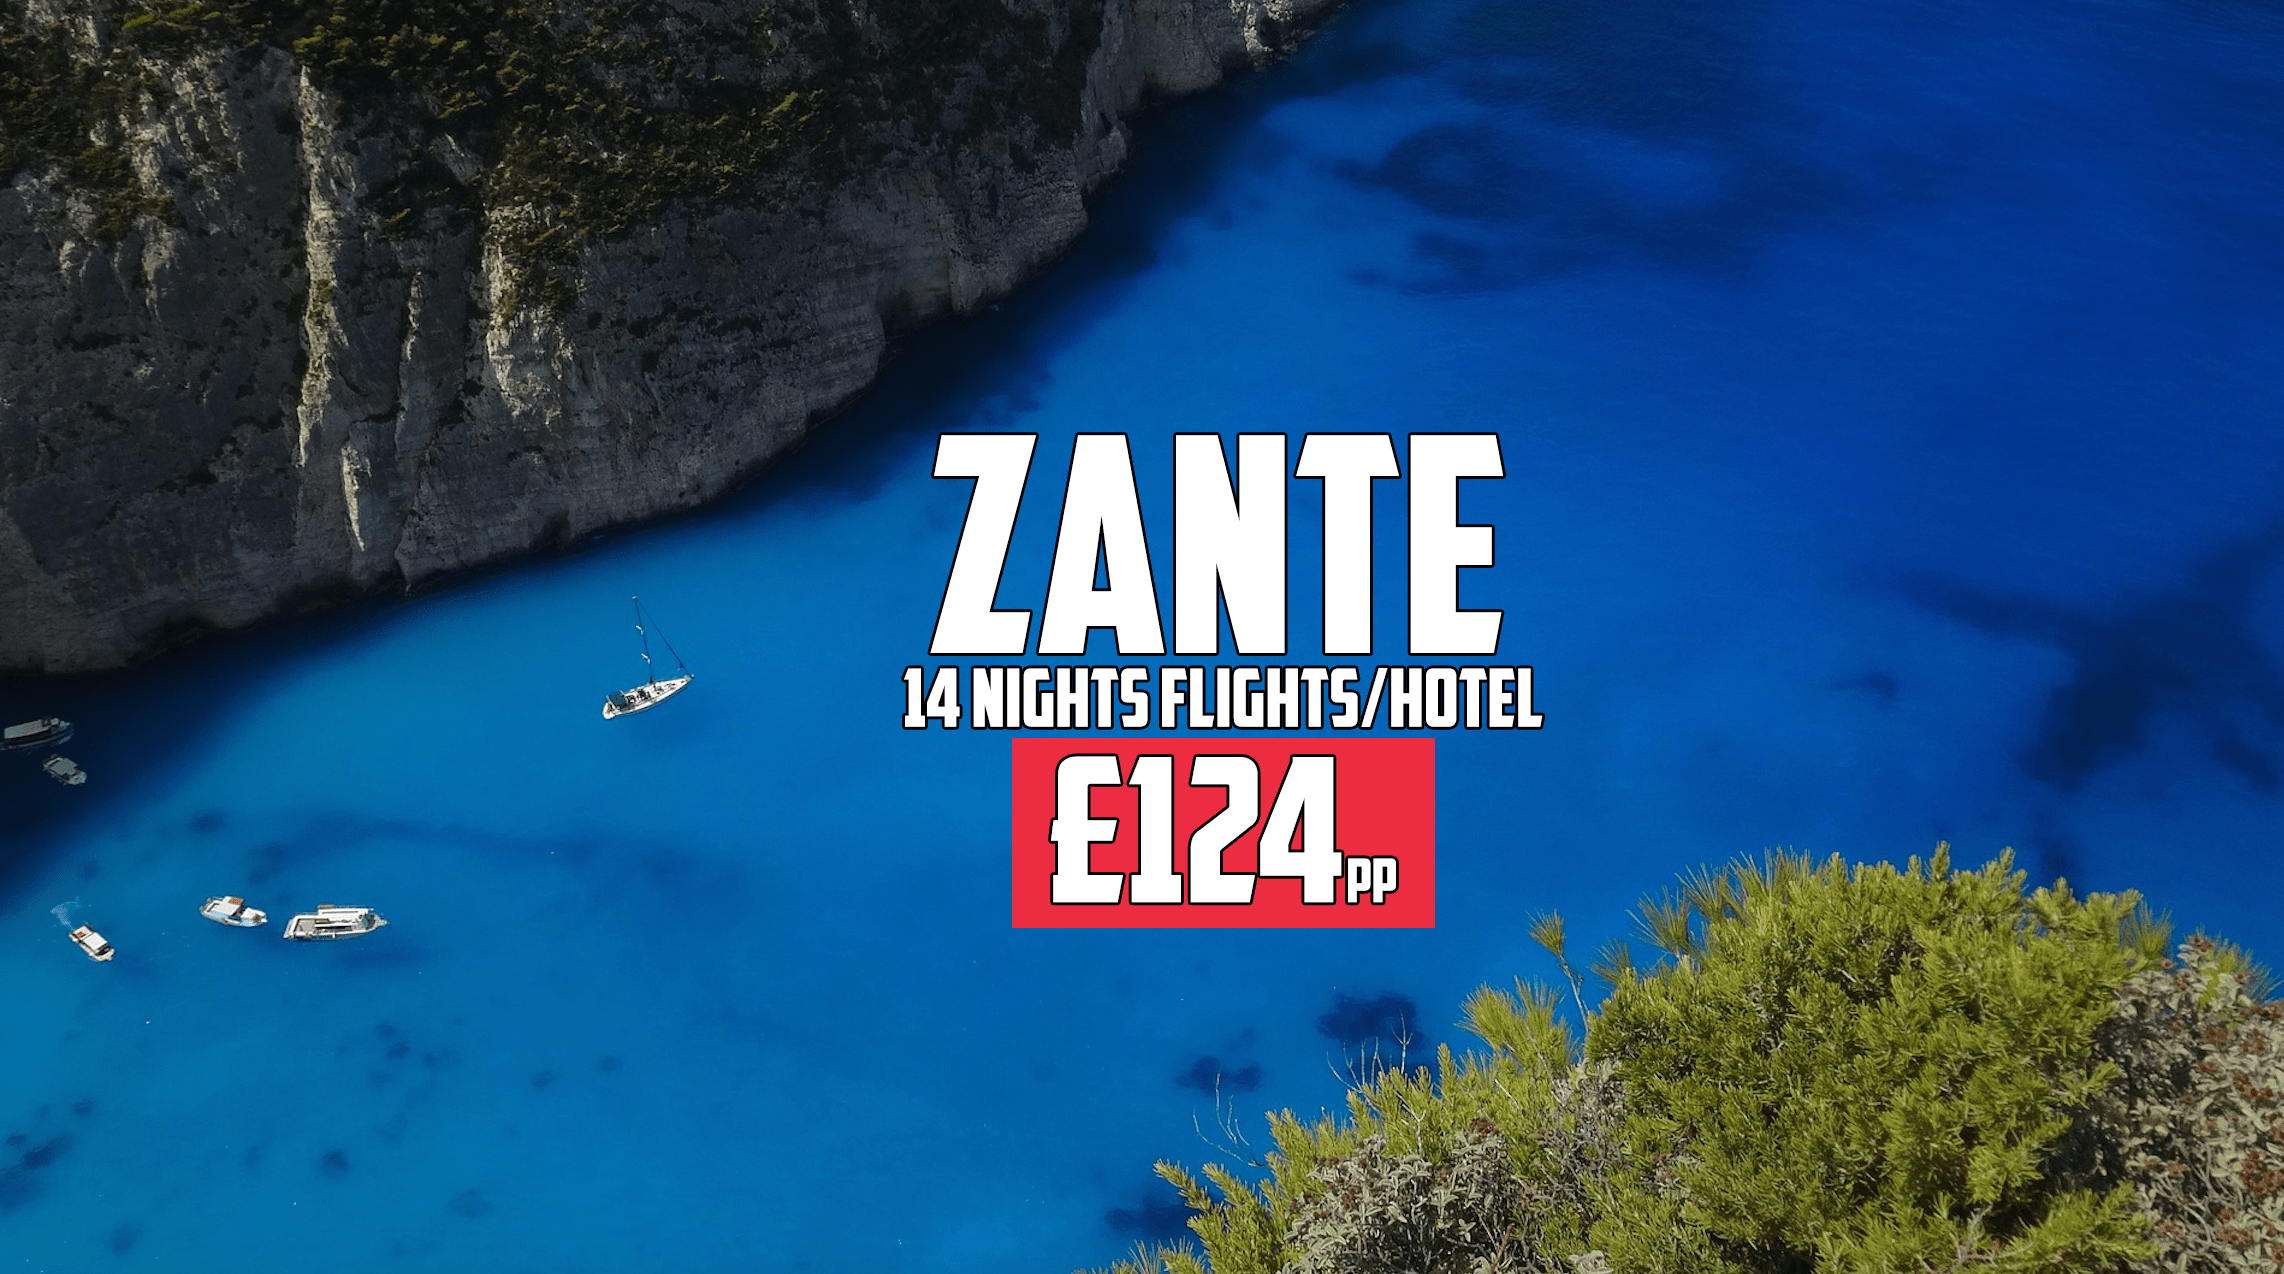 Last minute – Two weeks in Zante for £124